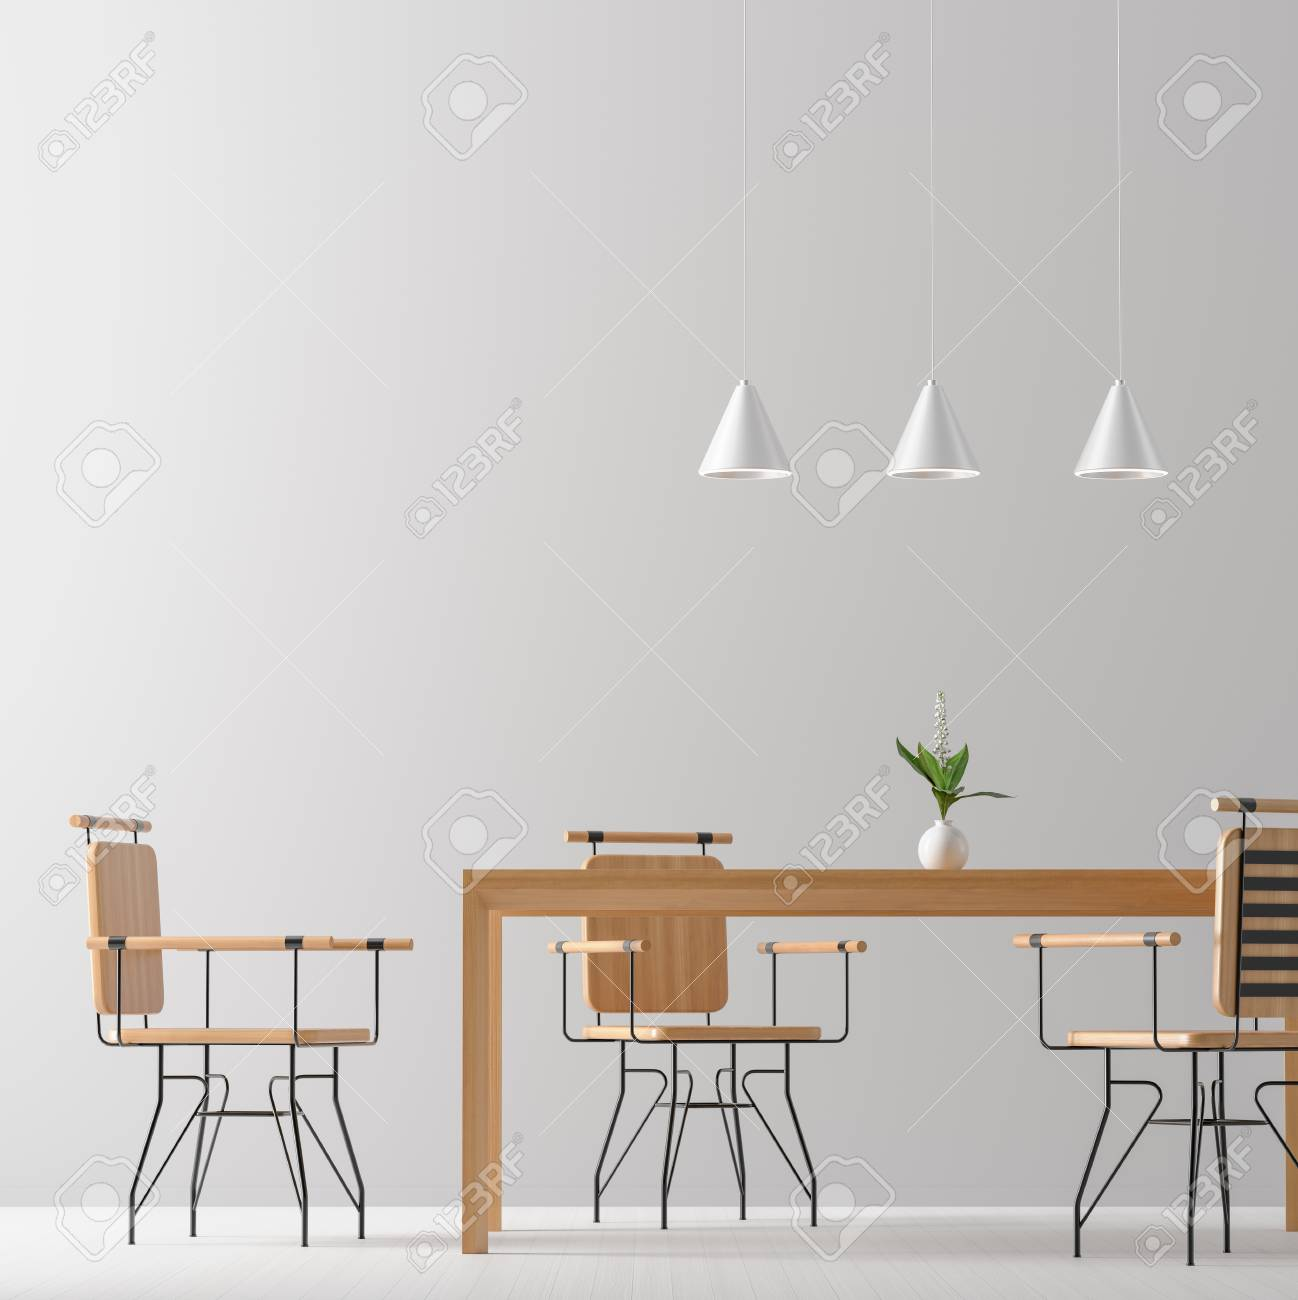 Spacious Modern Dining Room With Wooden Chairs And Table Minimalist Stock Photo Picture And Royalty Free Image Image 124623975